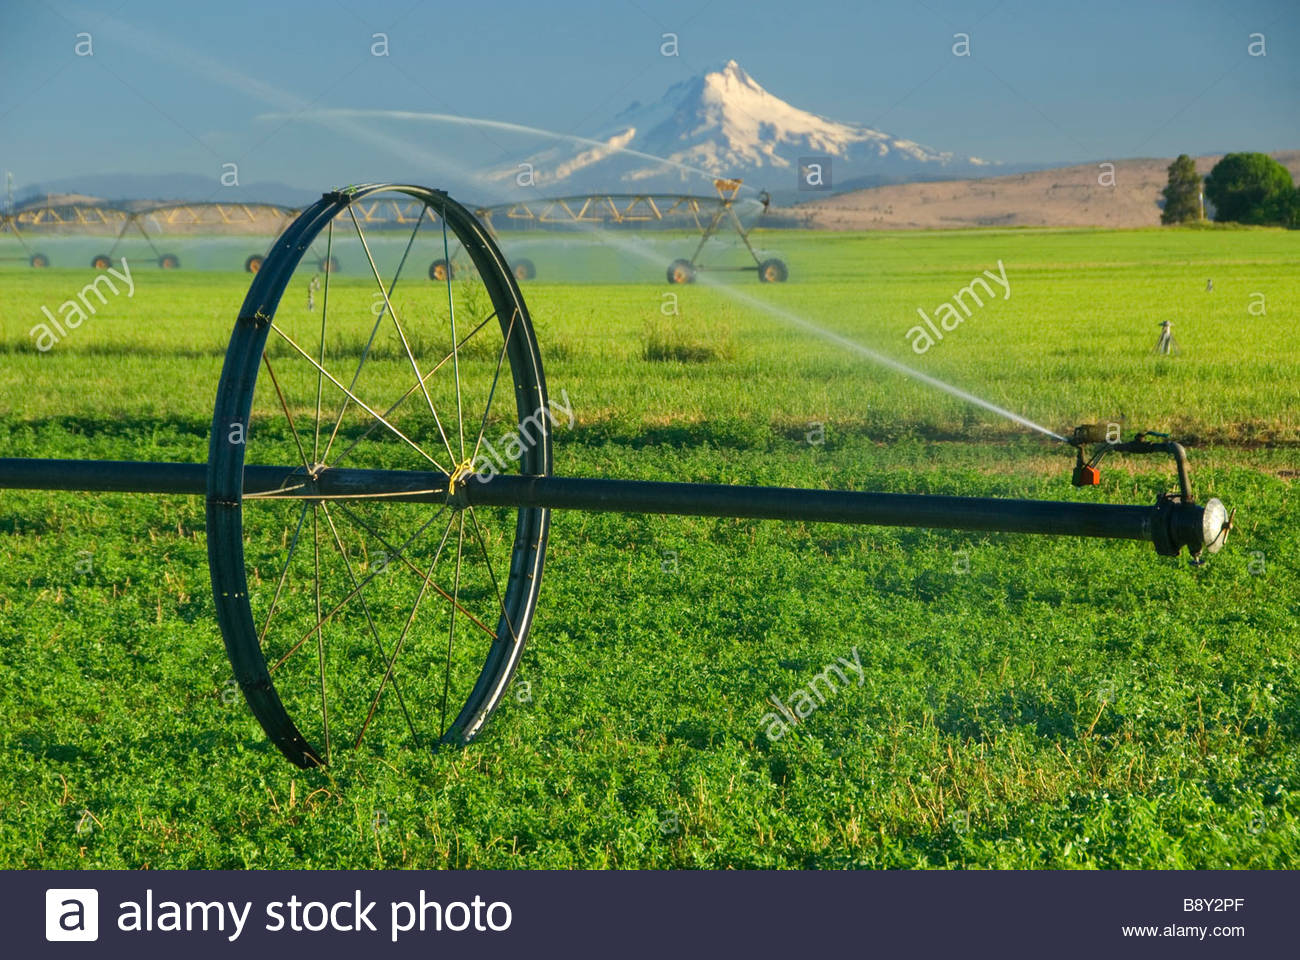 Agricultural sprinkler in a field, Jefferson County, Oregon, USA - Stock Image